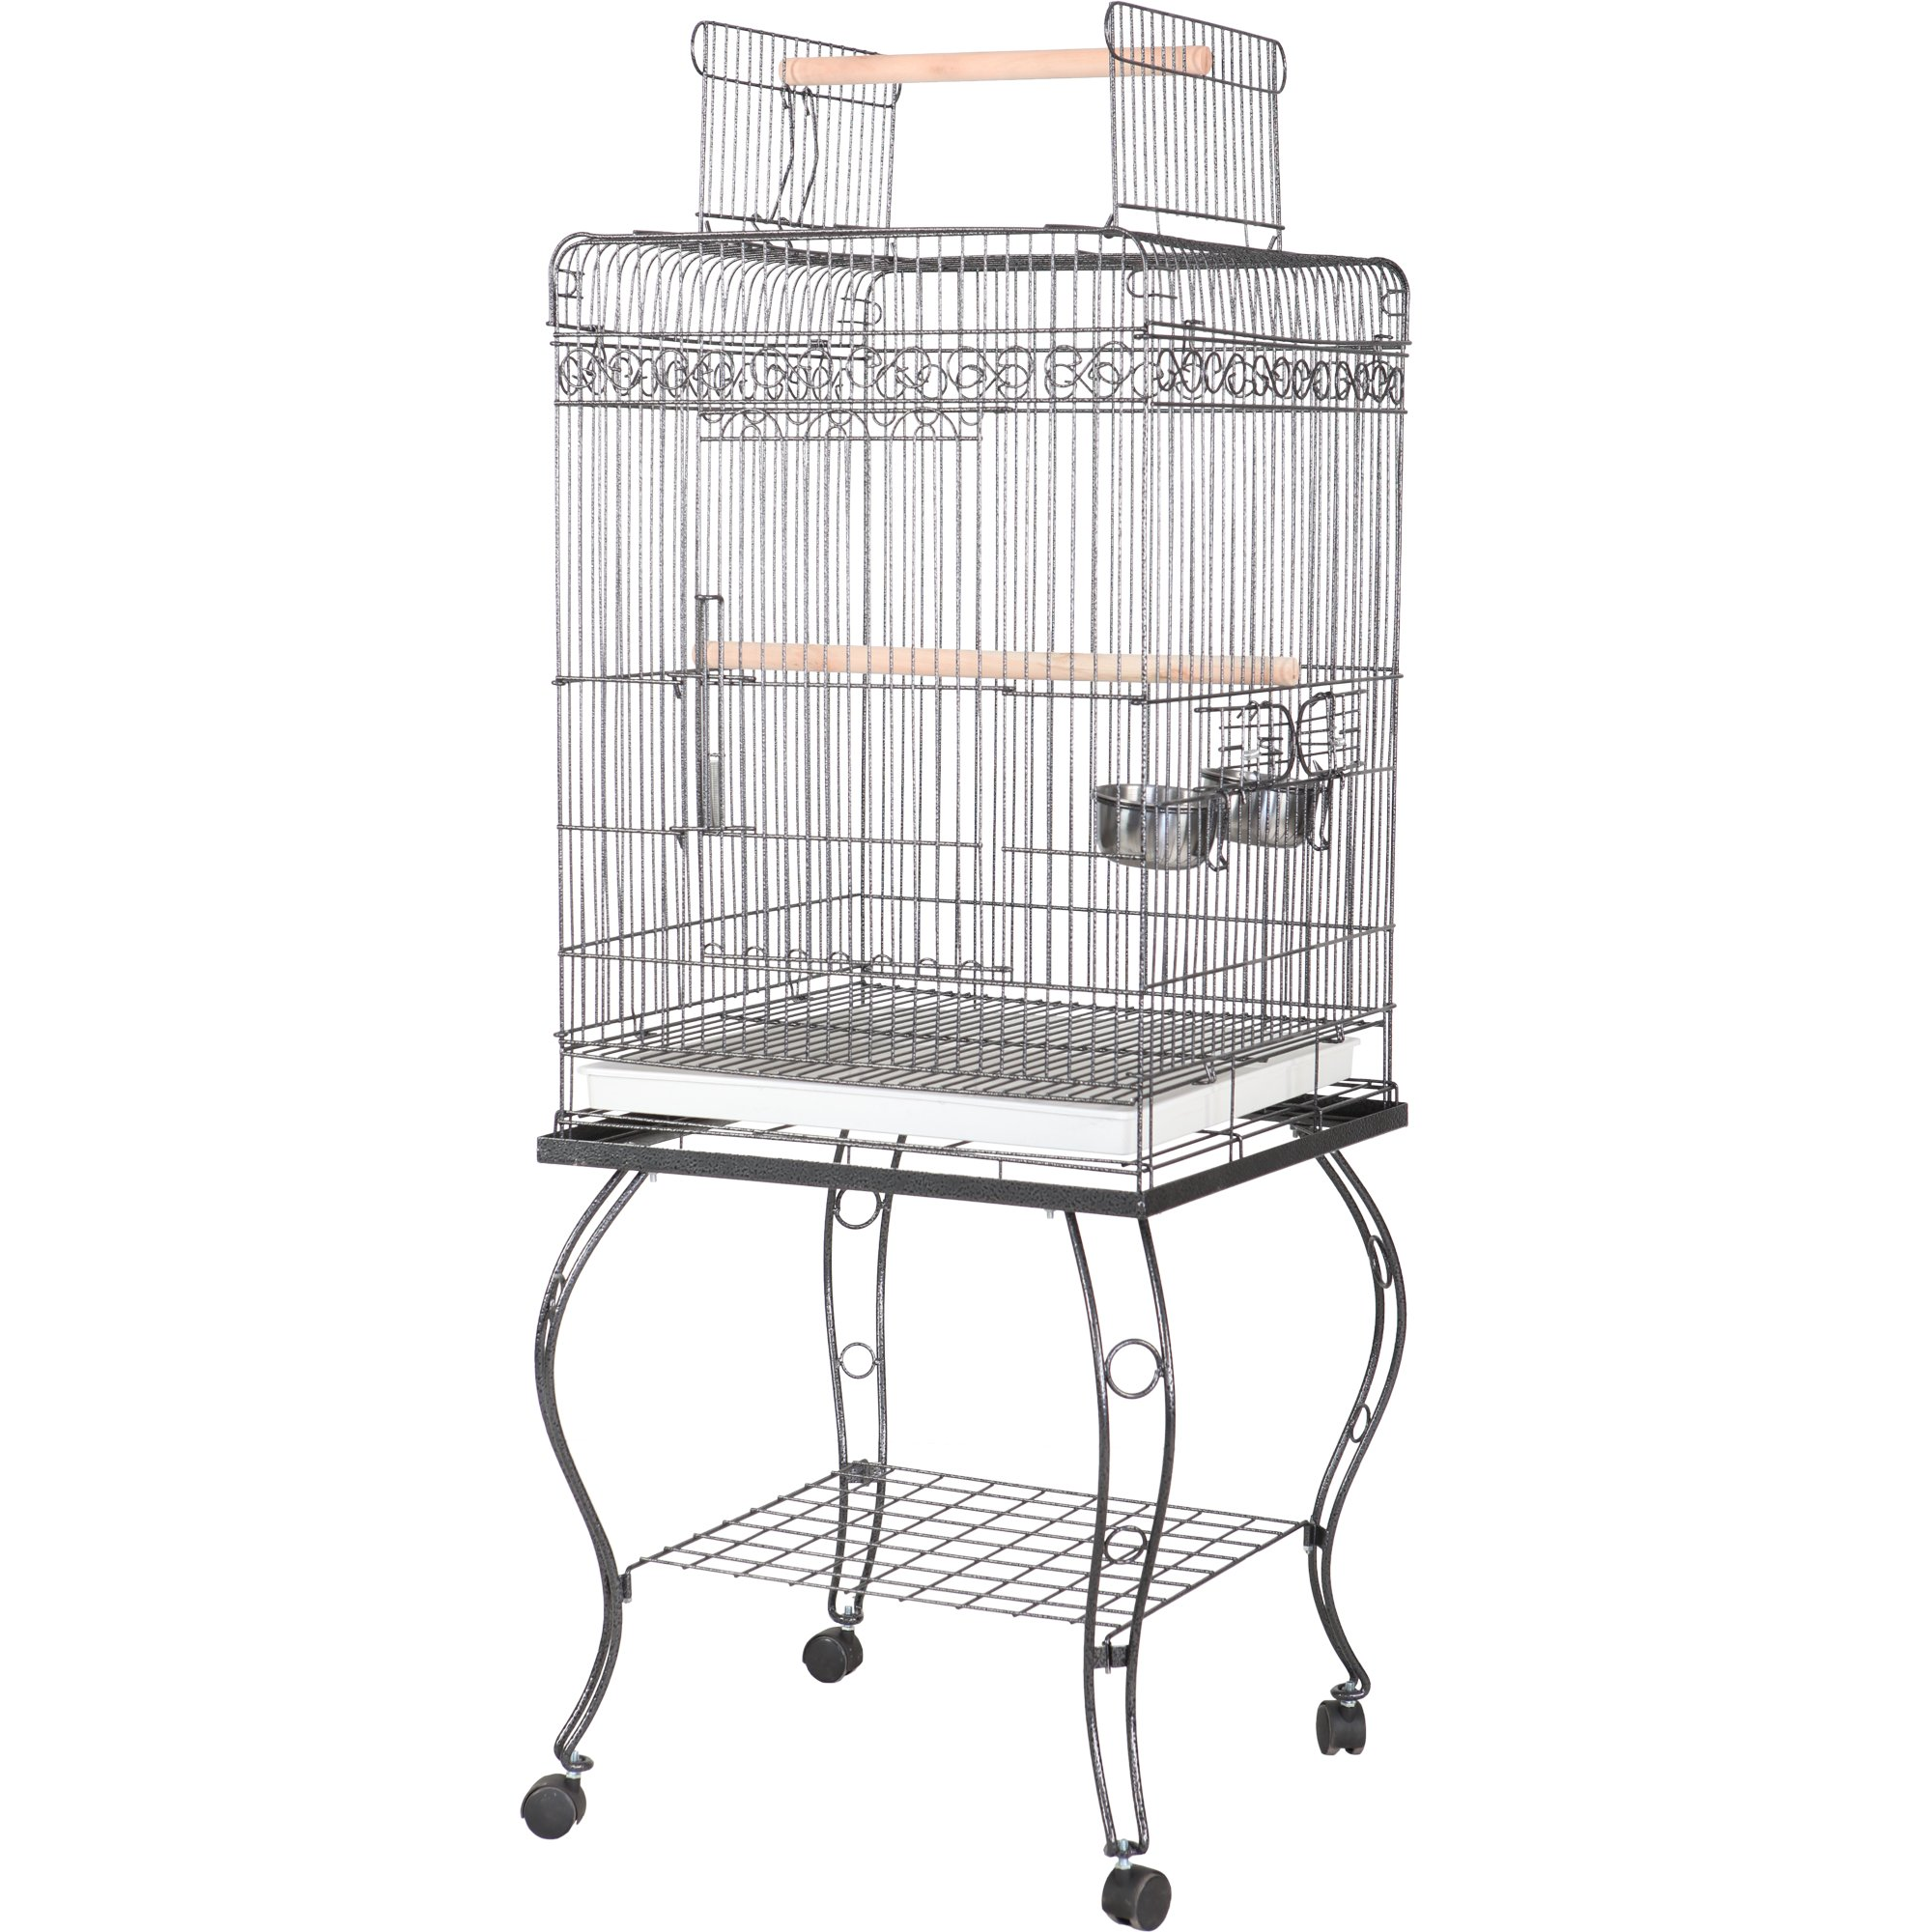 "A&E Cage Company 20"" X 20"" Play Top Bird Cage"